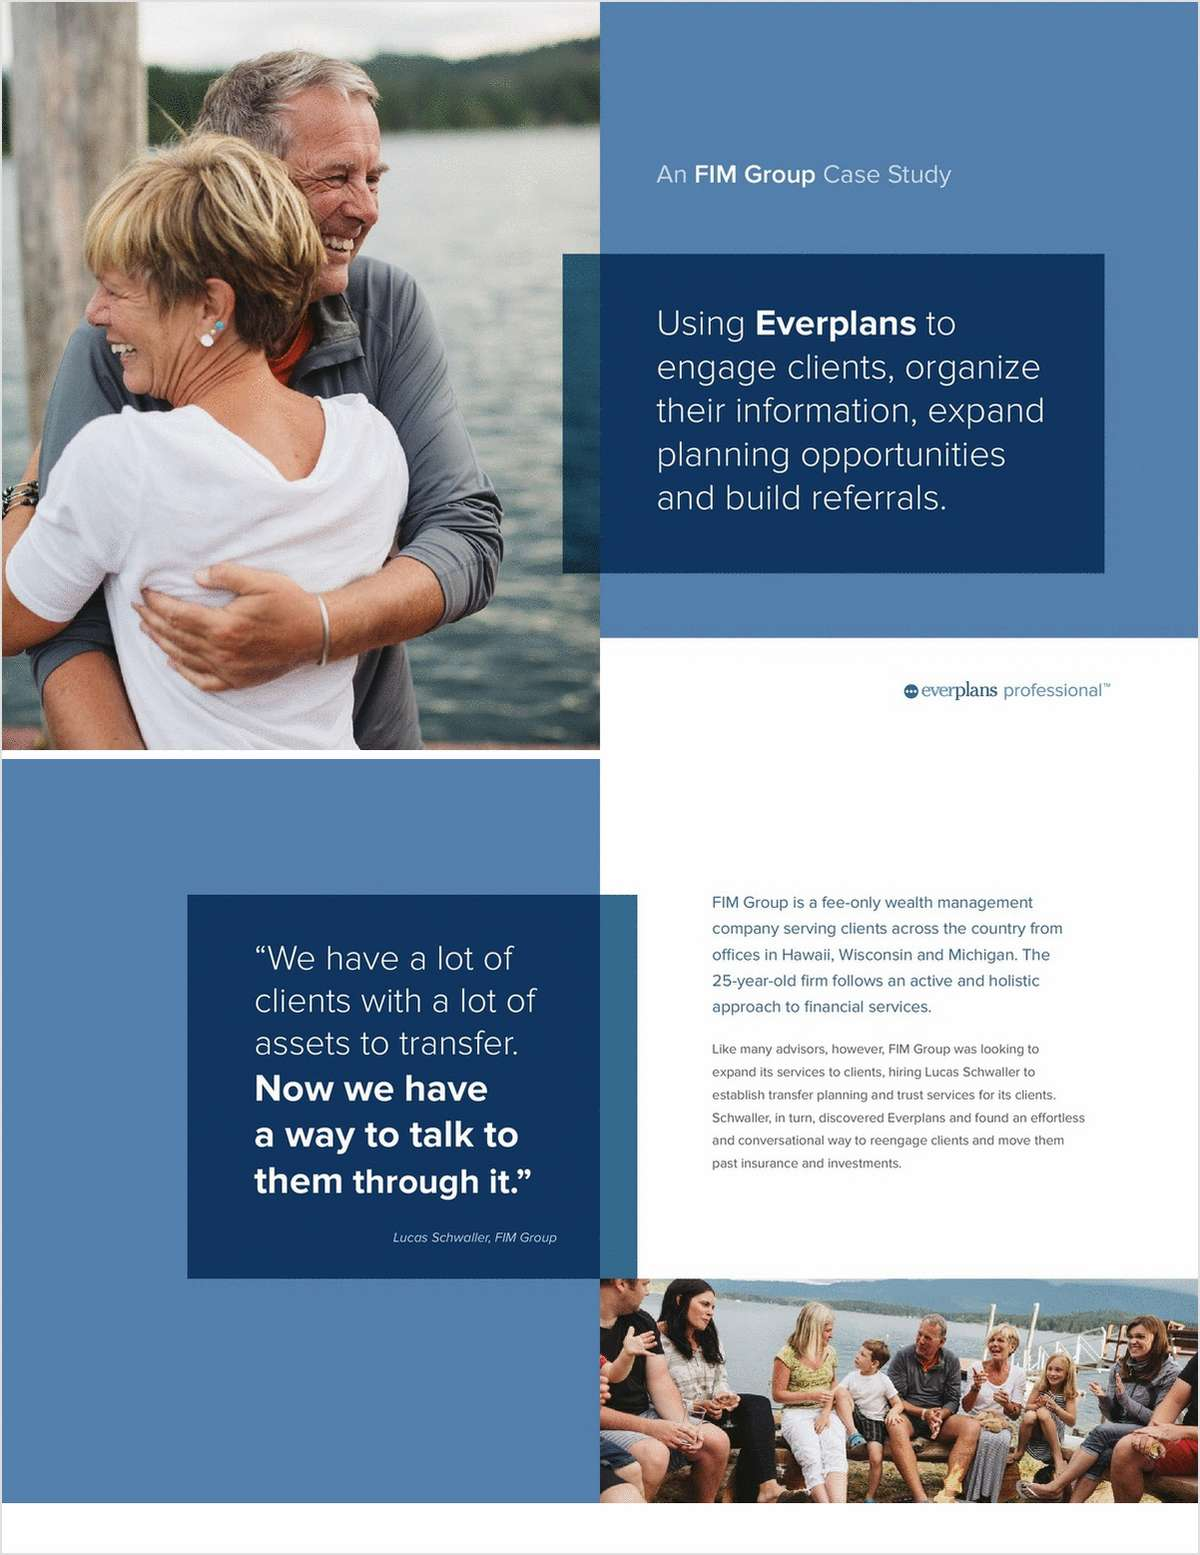 Expand Planning Opportunities to Engage Clients & Build Referrals -- A Case Study